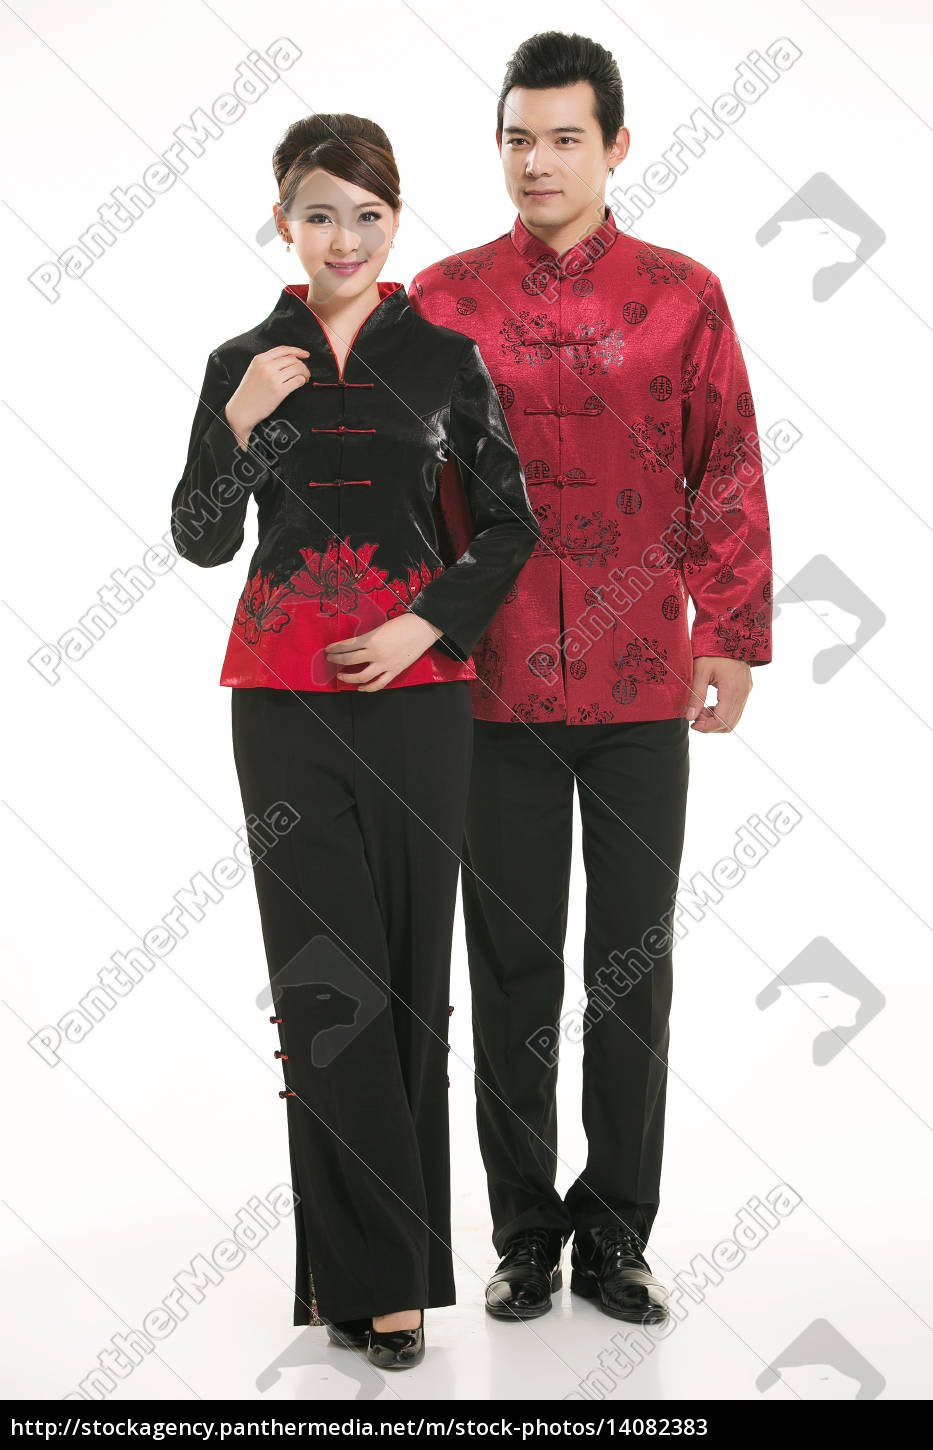 wearing, chinese, clothing, waiter, in, front - 14082383